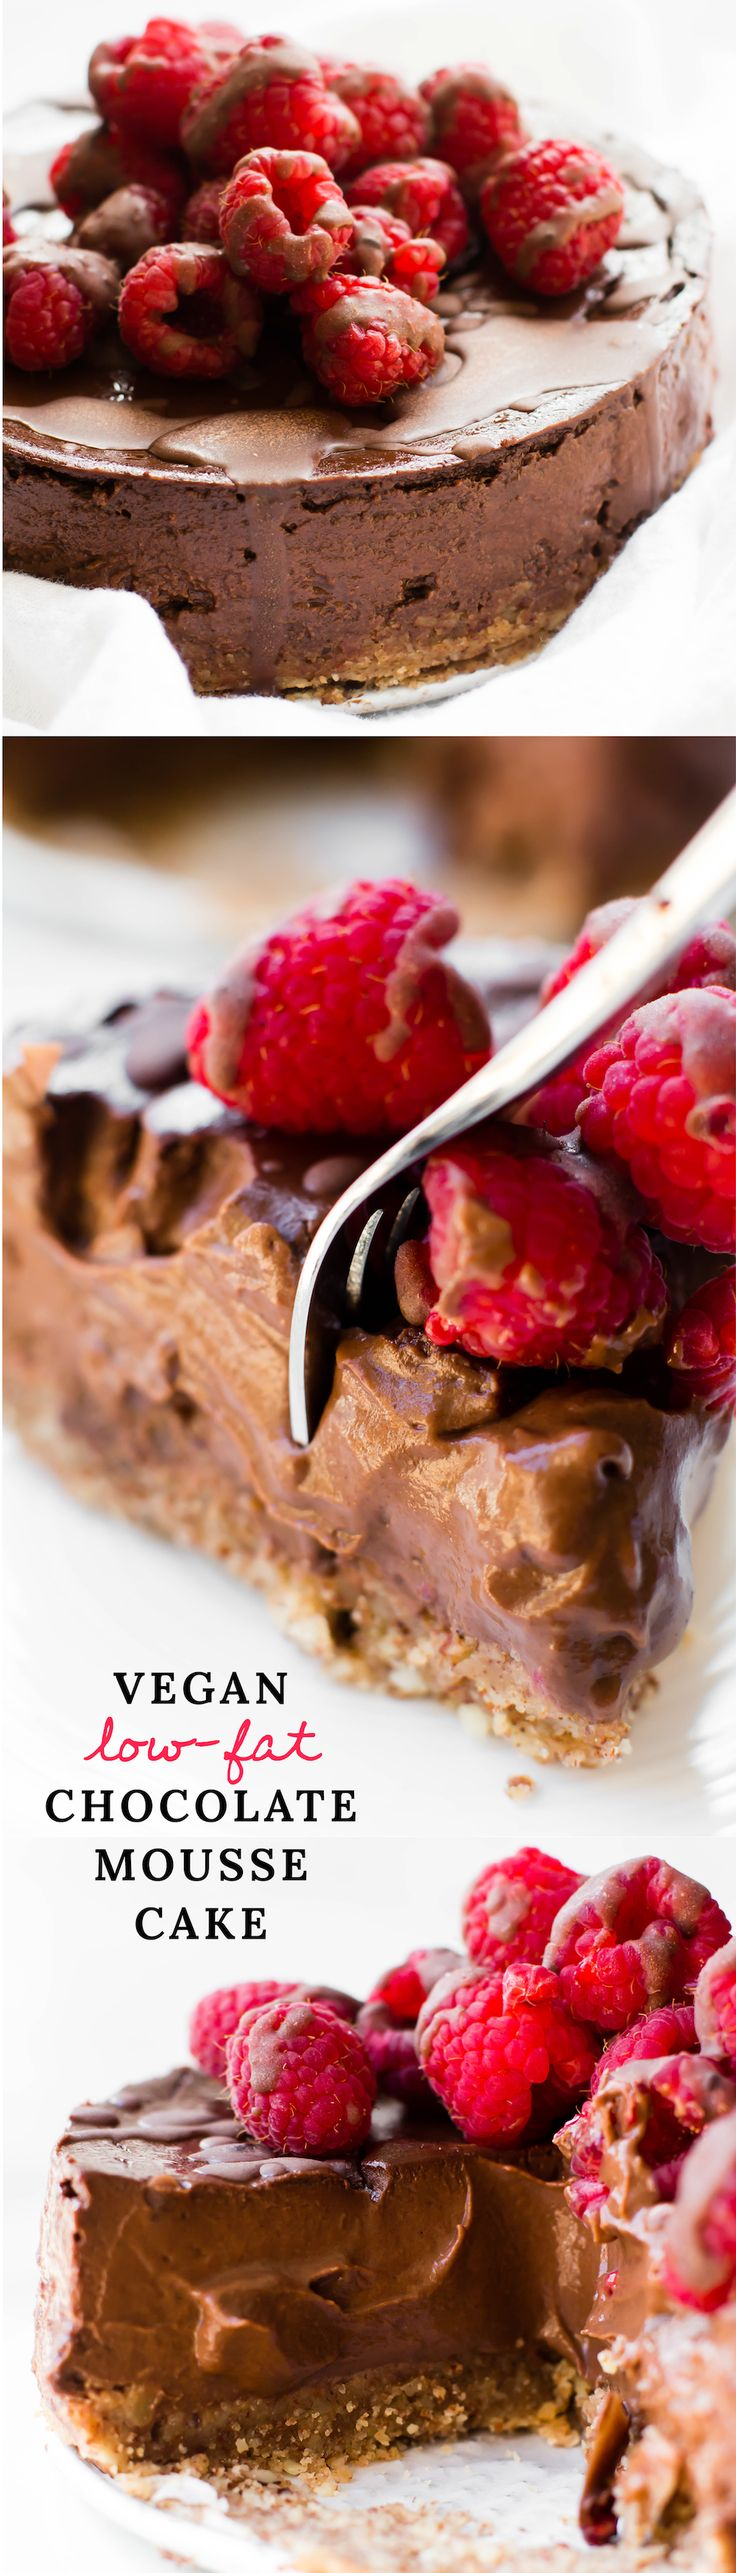 This insanely decadent Chocolate Mousse Cake may taste like a rich dessert indulgence but it's made from just a few healthy ingredients right in the blender!